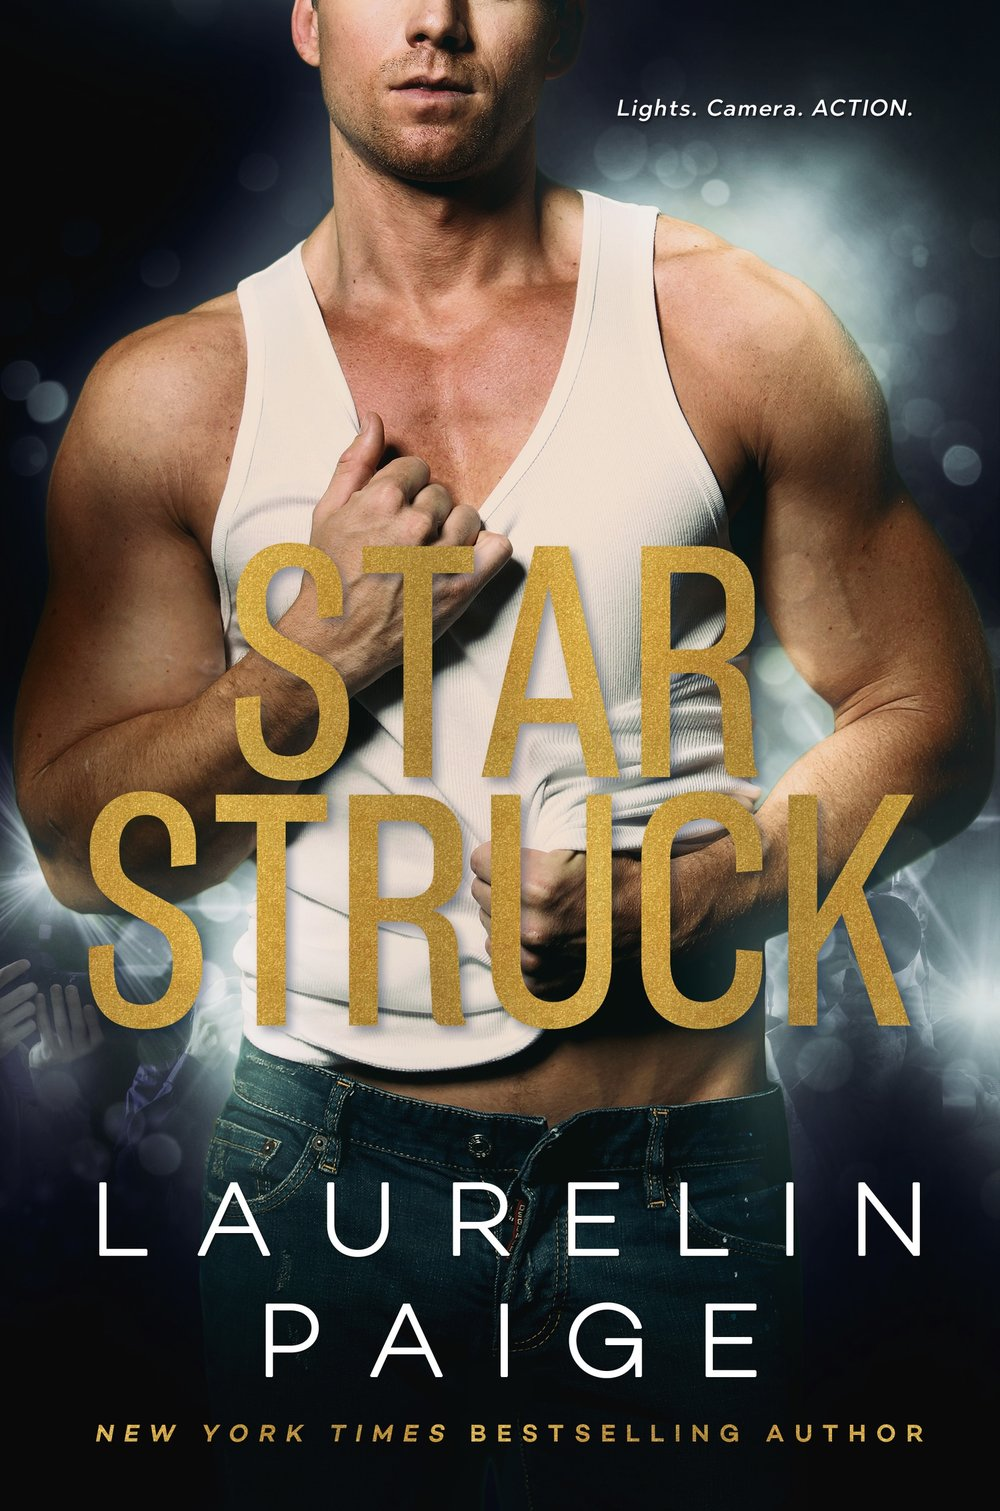 LPStarStruckBookCover55x825_MEDIUM-NEW.jpg